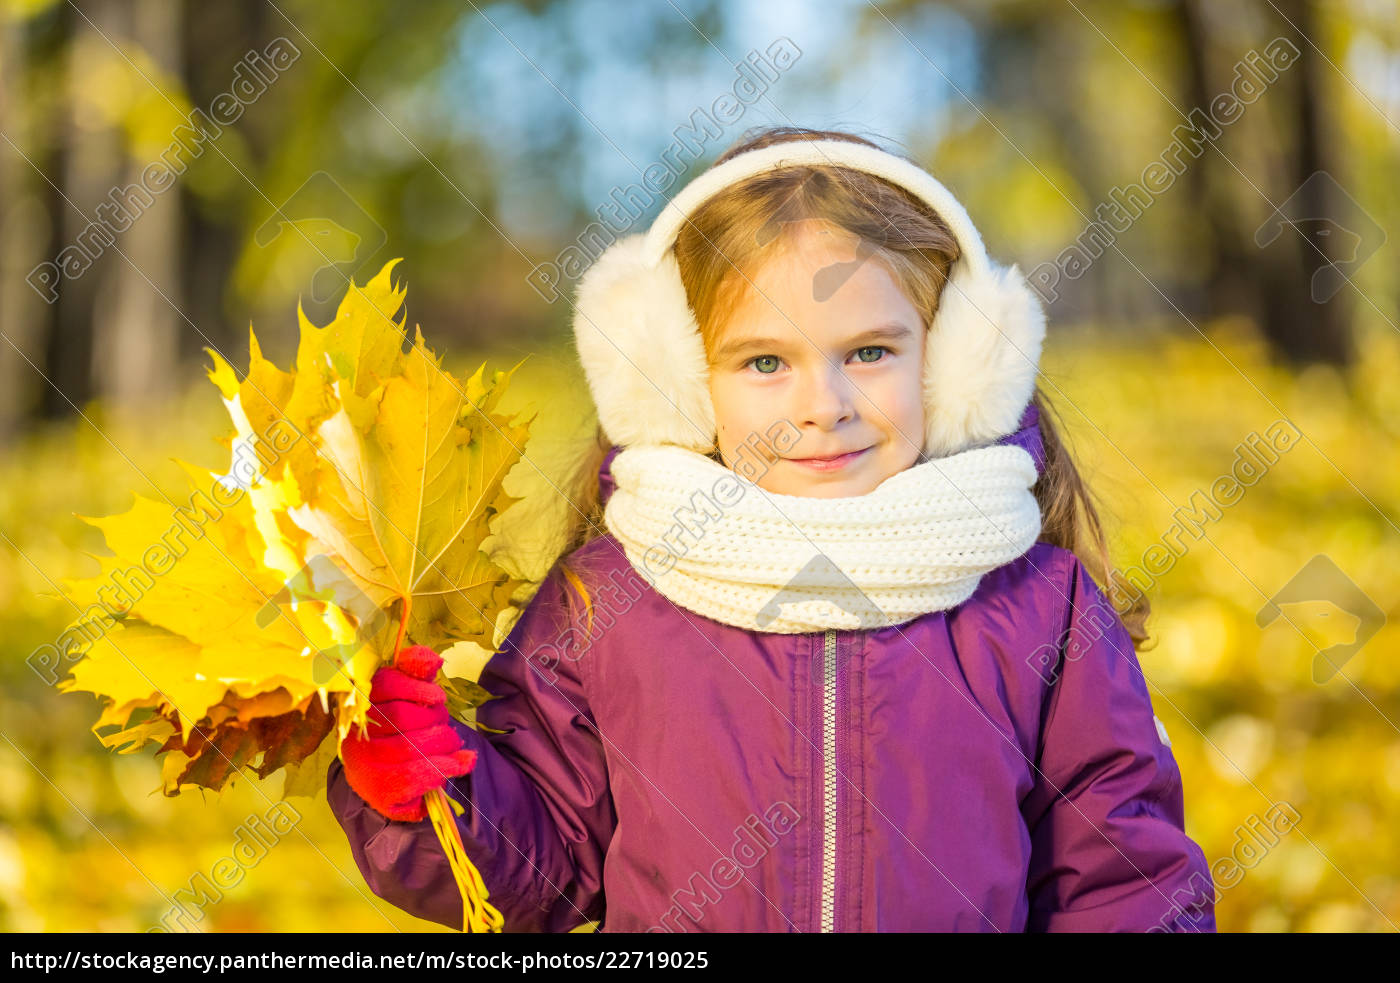 happy, little, girl, in, earflaps, with - 22719025